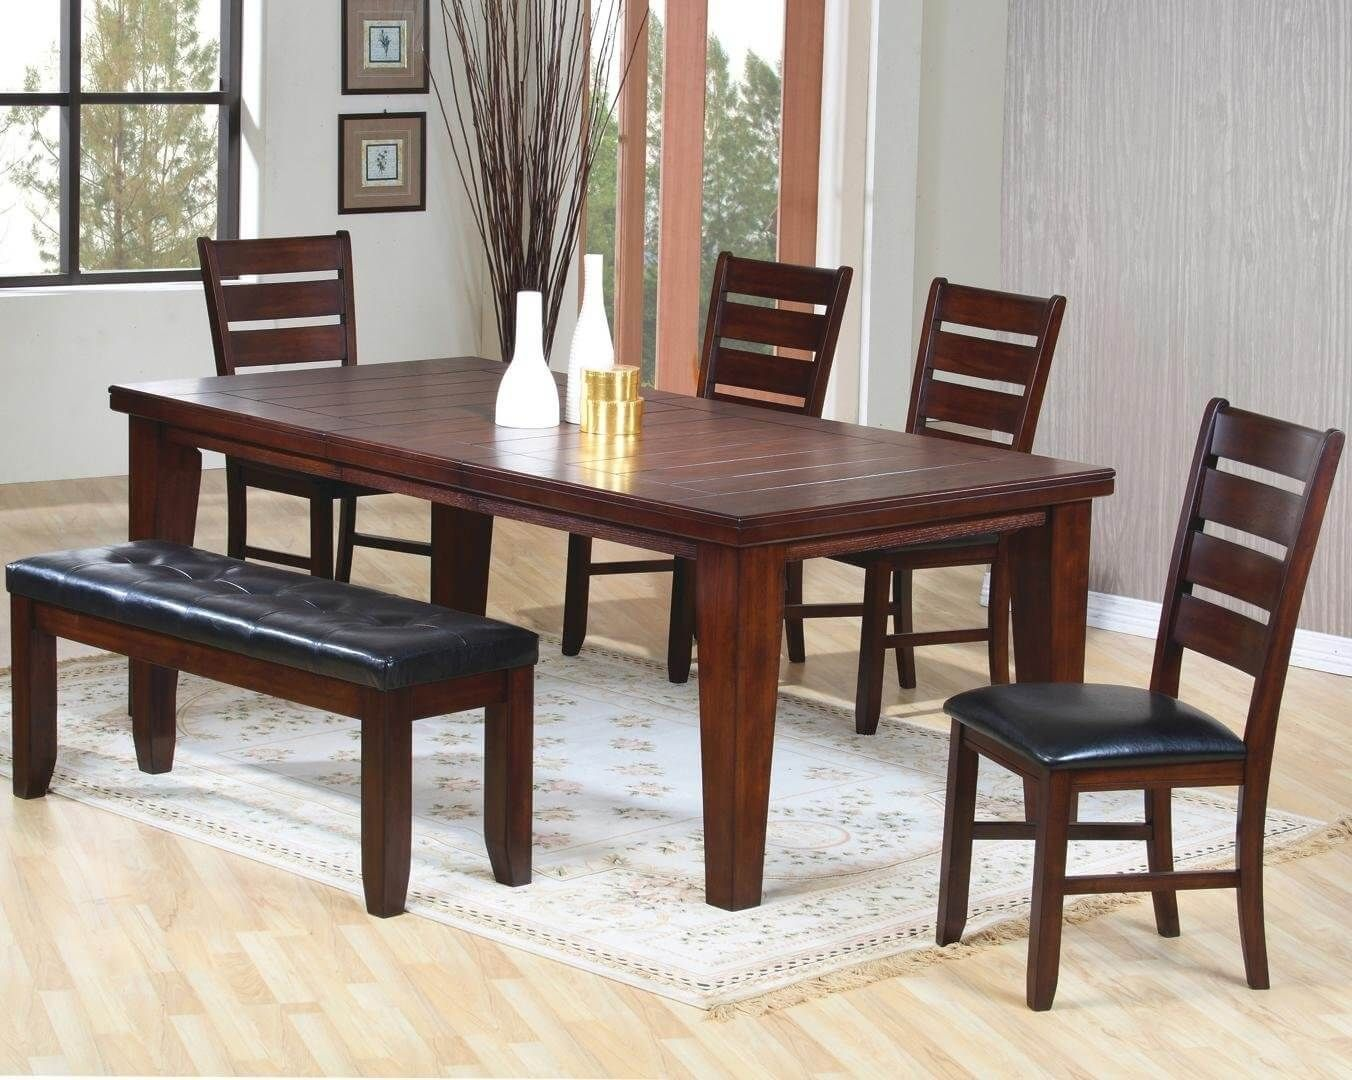 Room Dining Room Sets With Chairs